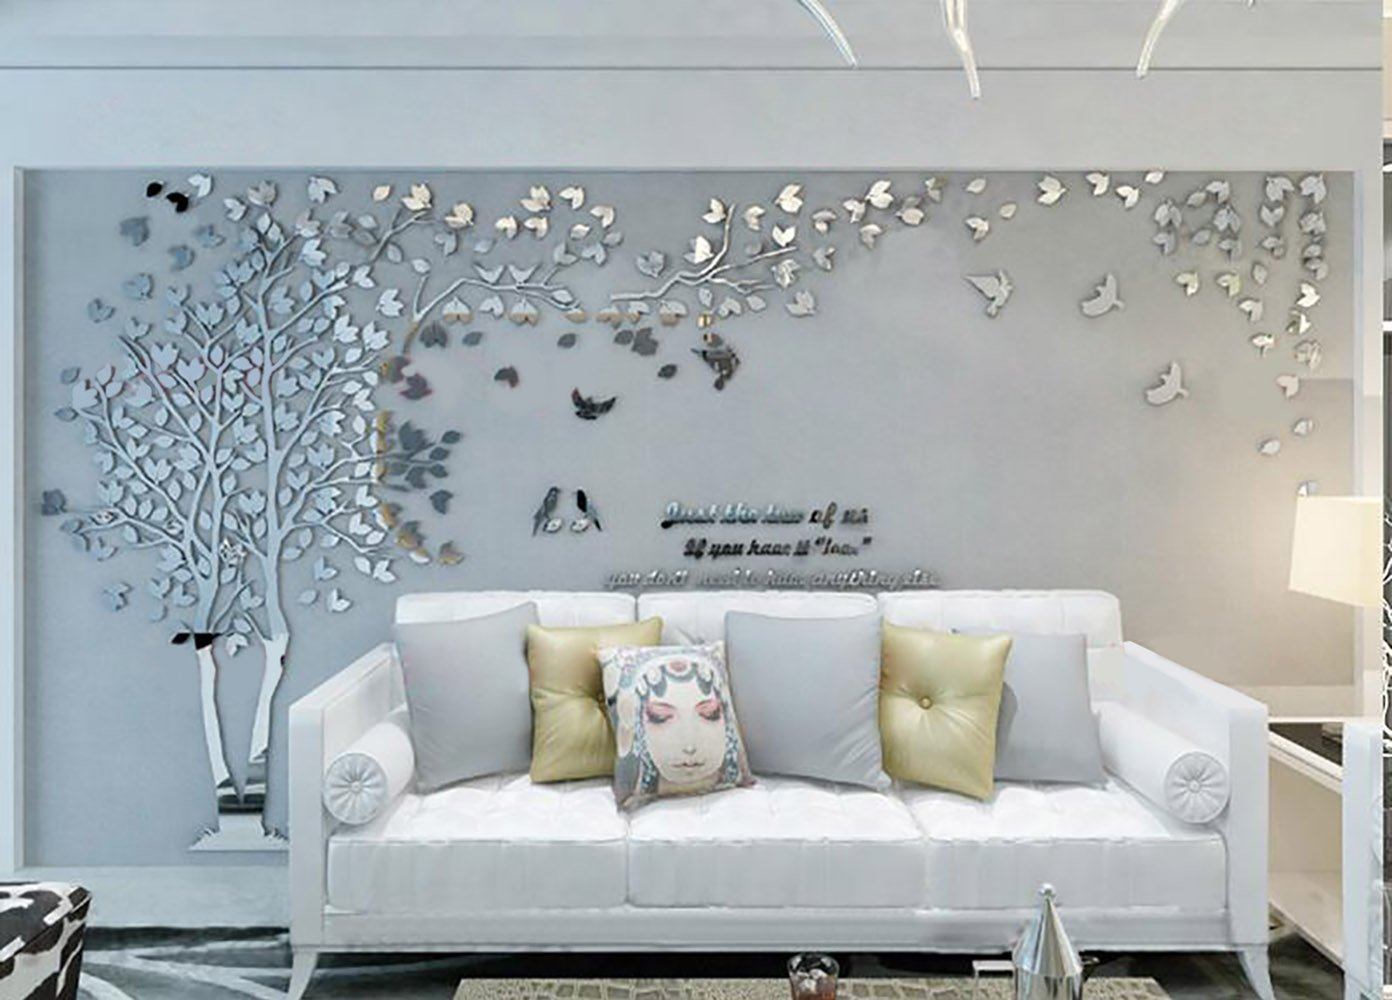 N.SunForest 3D Crystal Acrylic Couple Tree Wall Stickers Silver Self-Adhesive DIY Wall Murals Home Decor Art - X-Large by N.SunForest (Image #7)